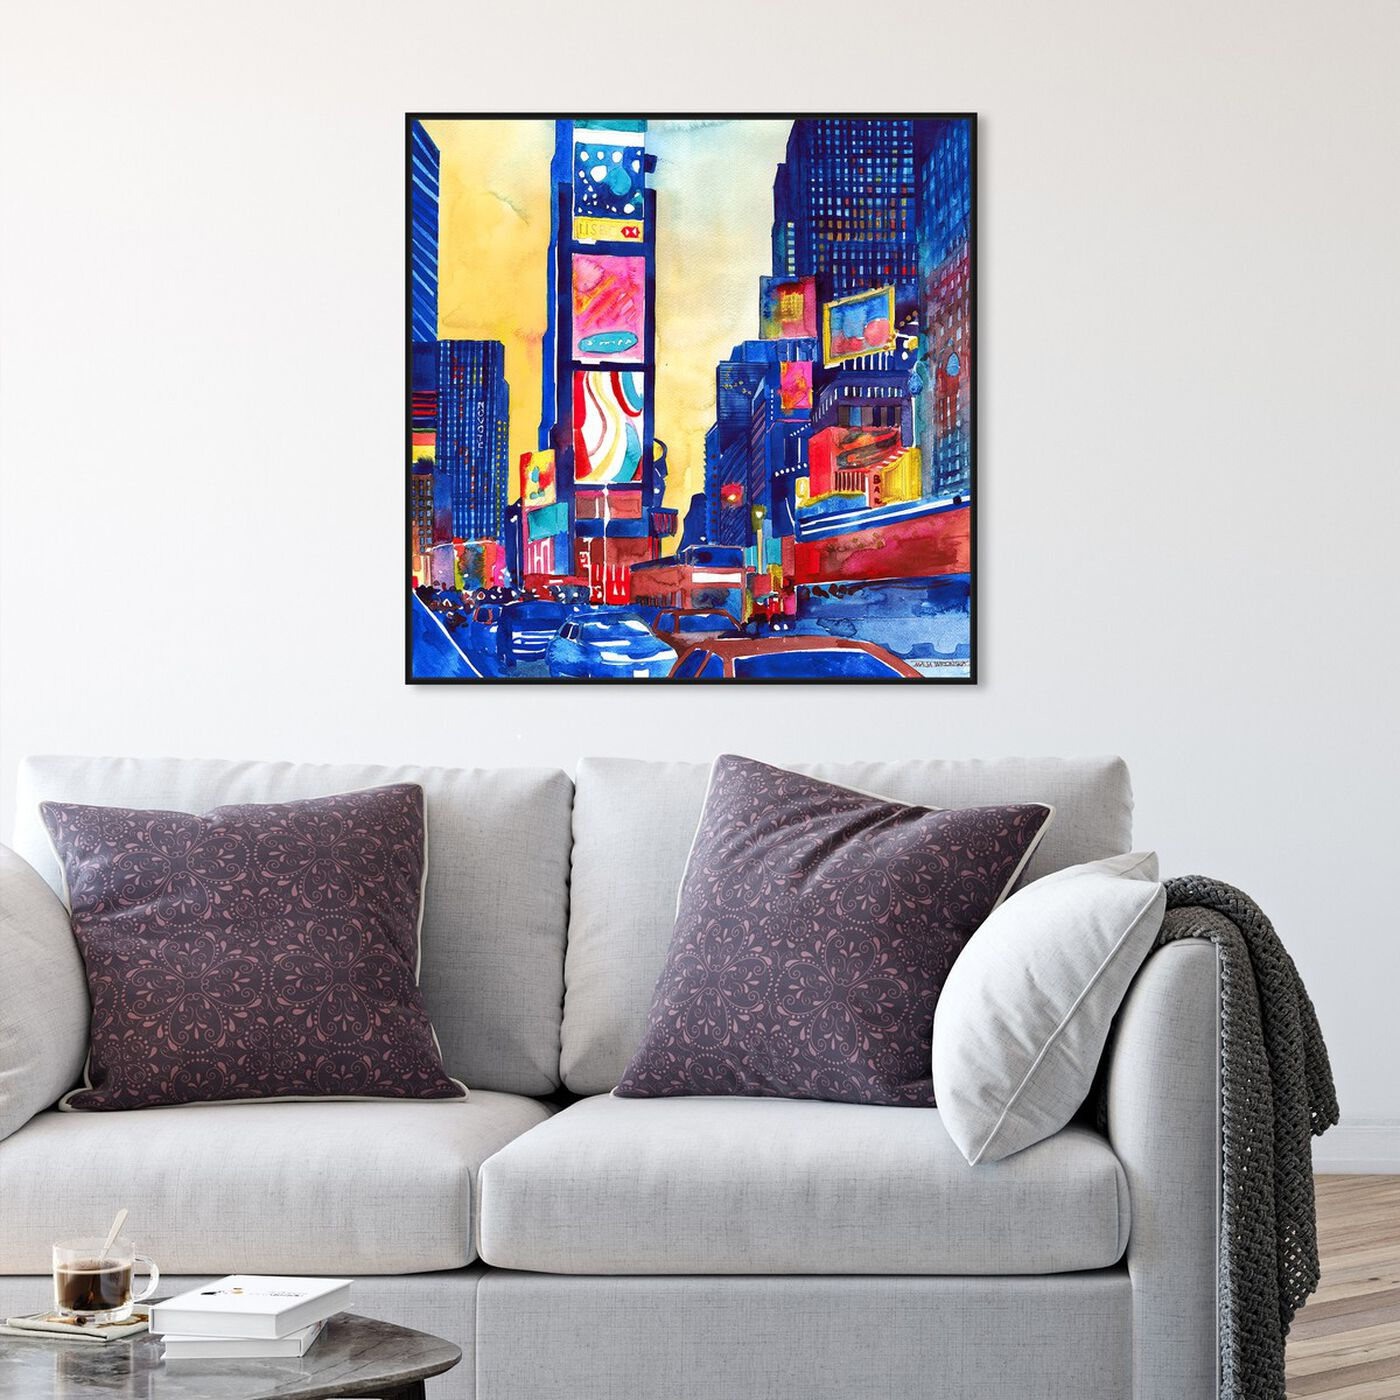 Hanging view of Maja Wronska - Lively Busy Street featuring cities and skylines and united states cities art.